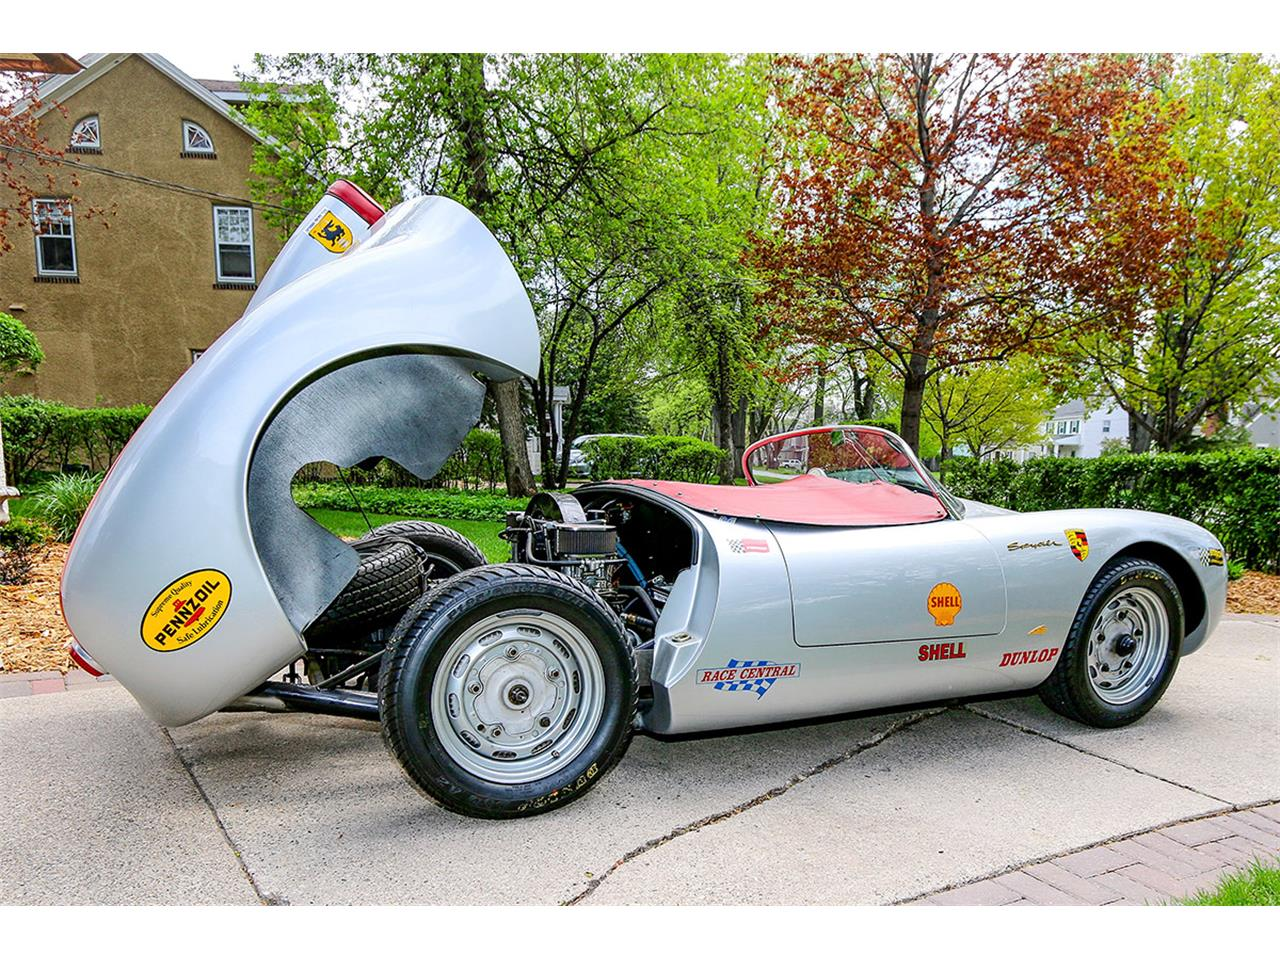 Large Picture of Classic 1955 Porsche 550 located in North Dakota - $54,500.00 Offered by a Private Seller - NC22